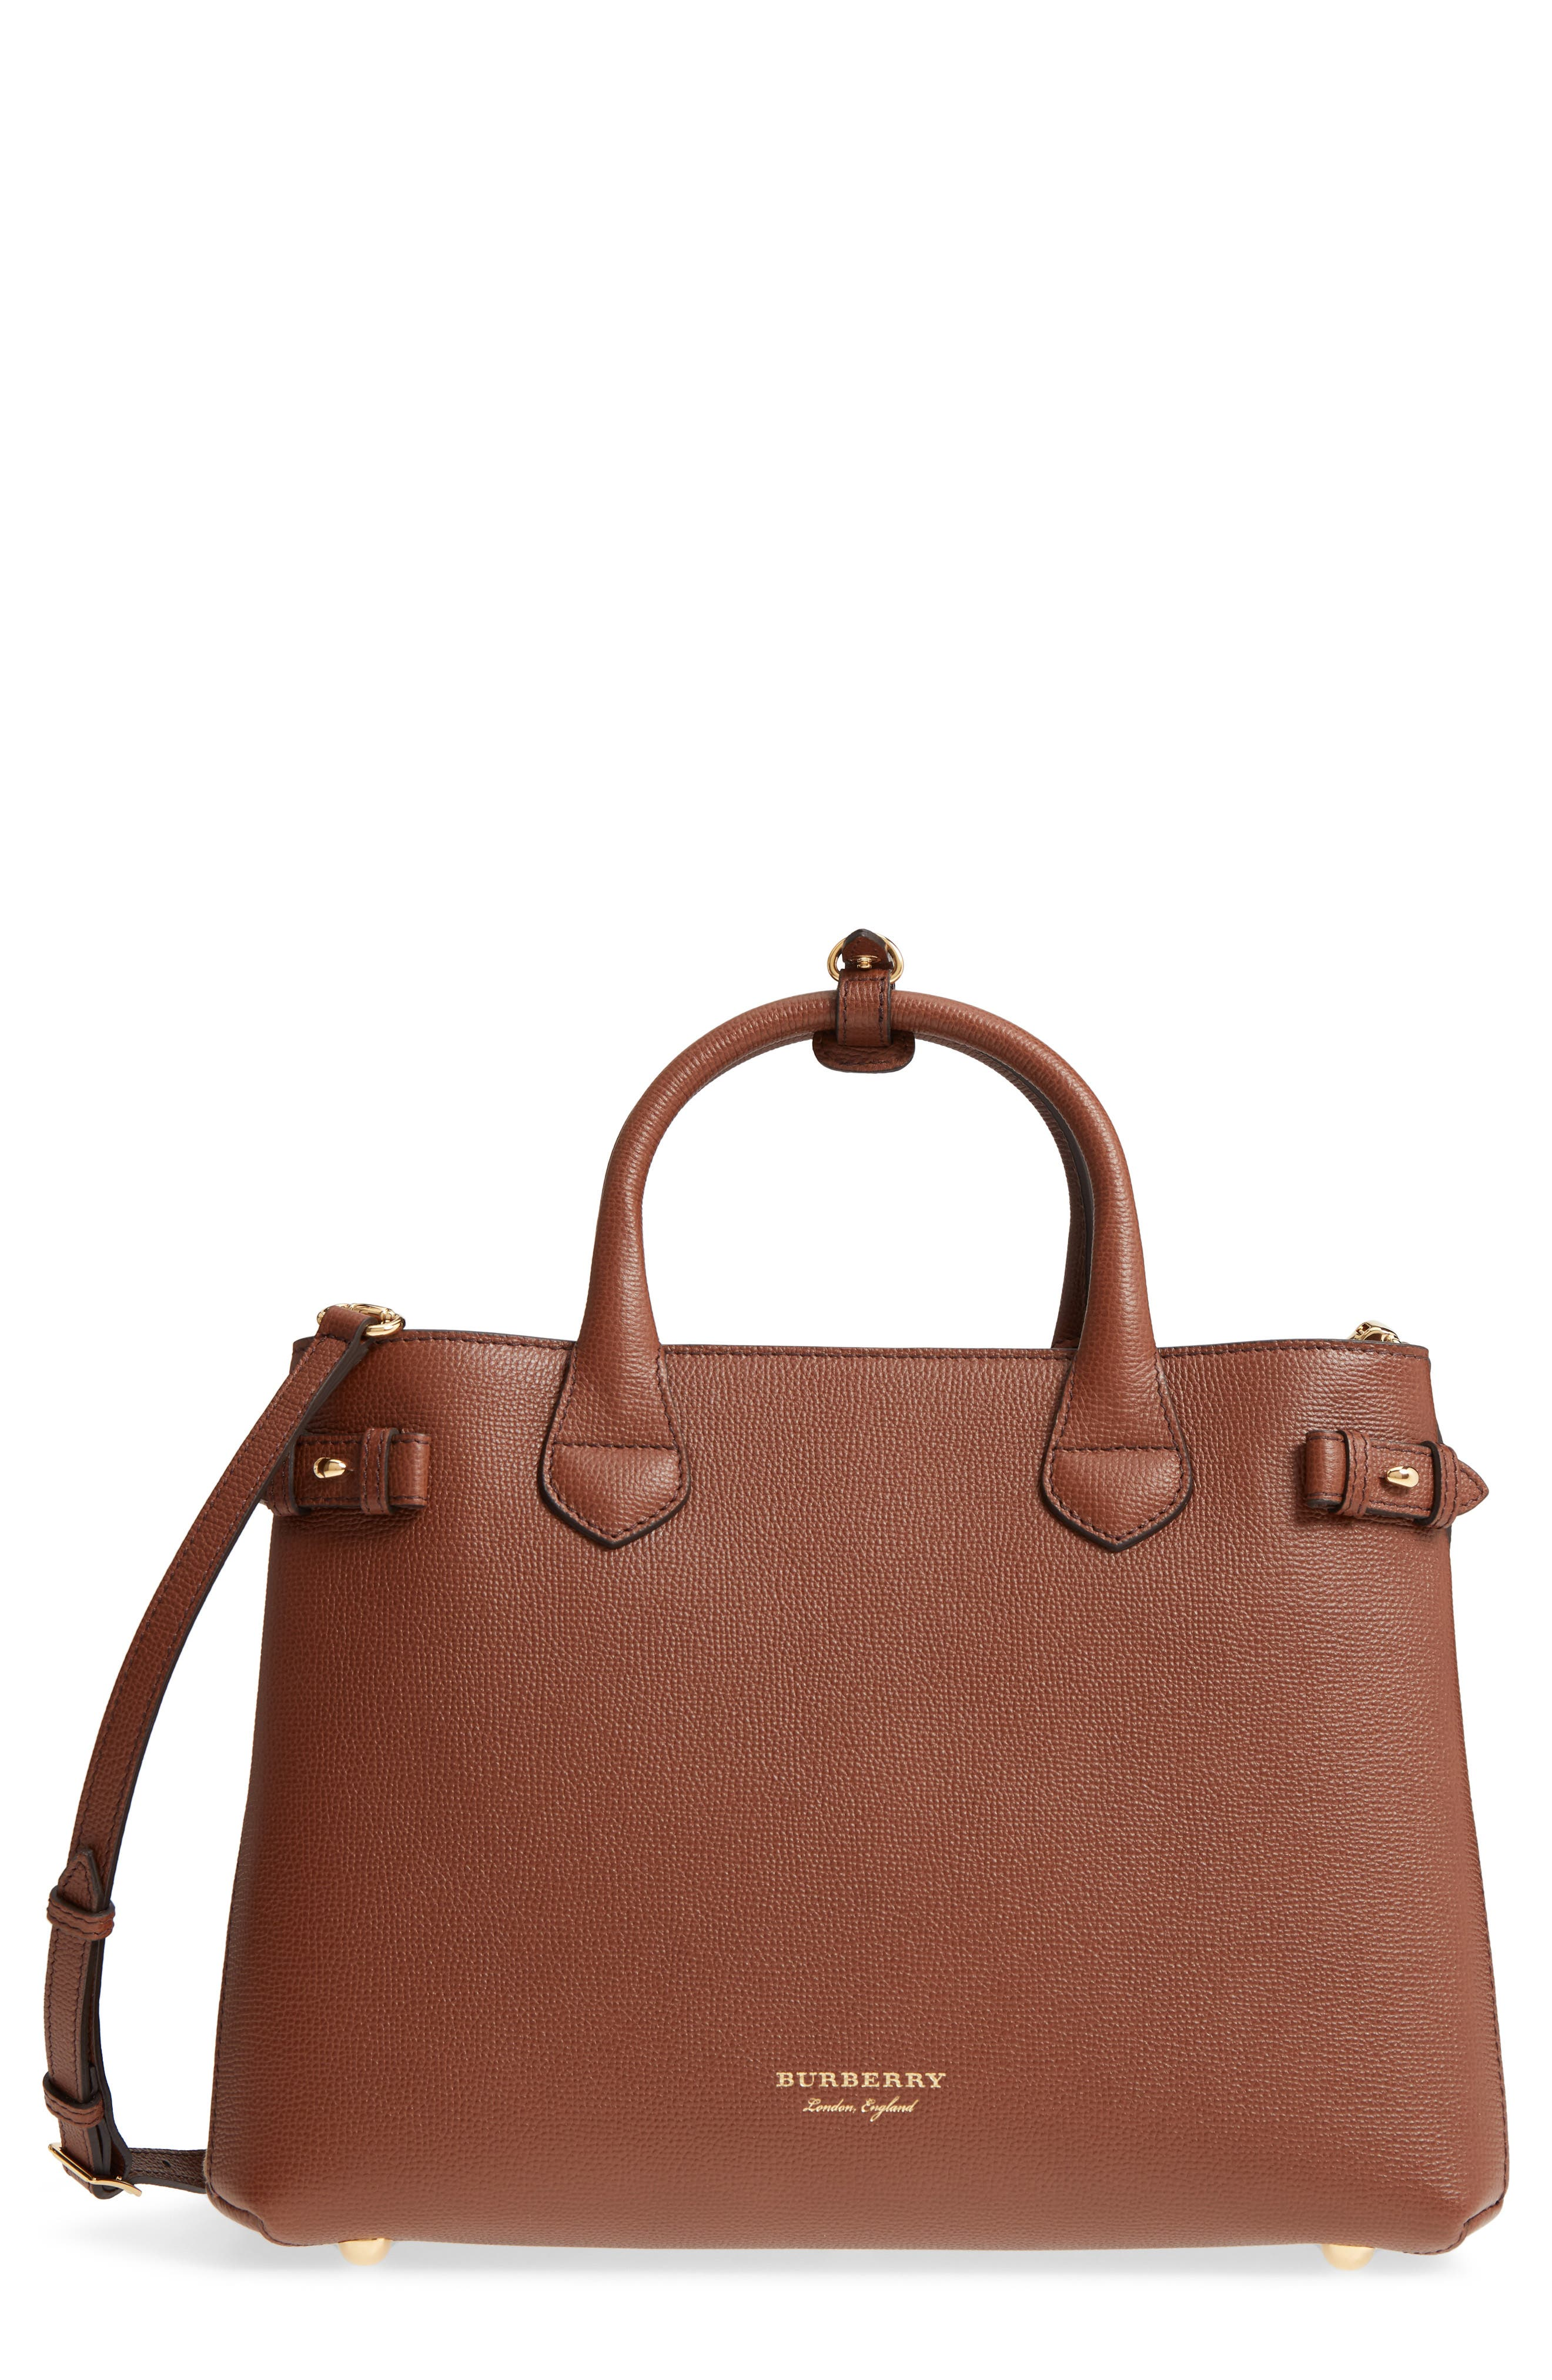 Medium Banner House Check Leather Tote,                             Main thumbnail 1, color,                             TAN